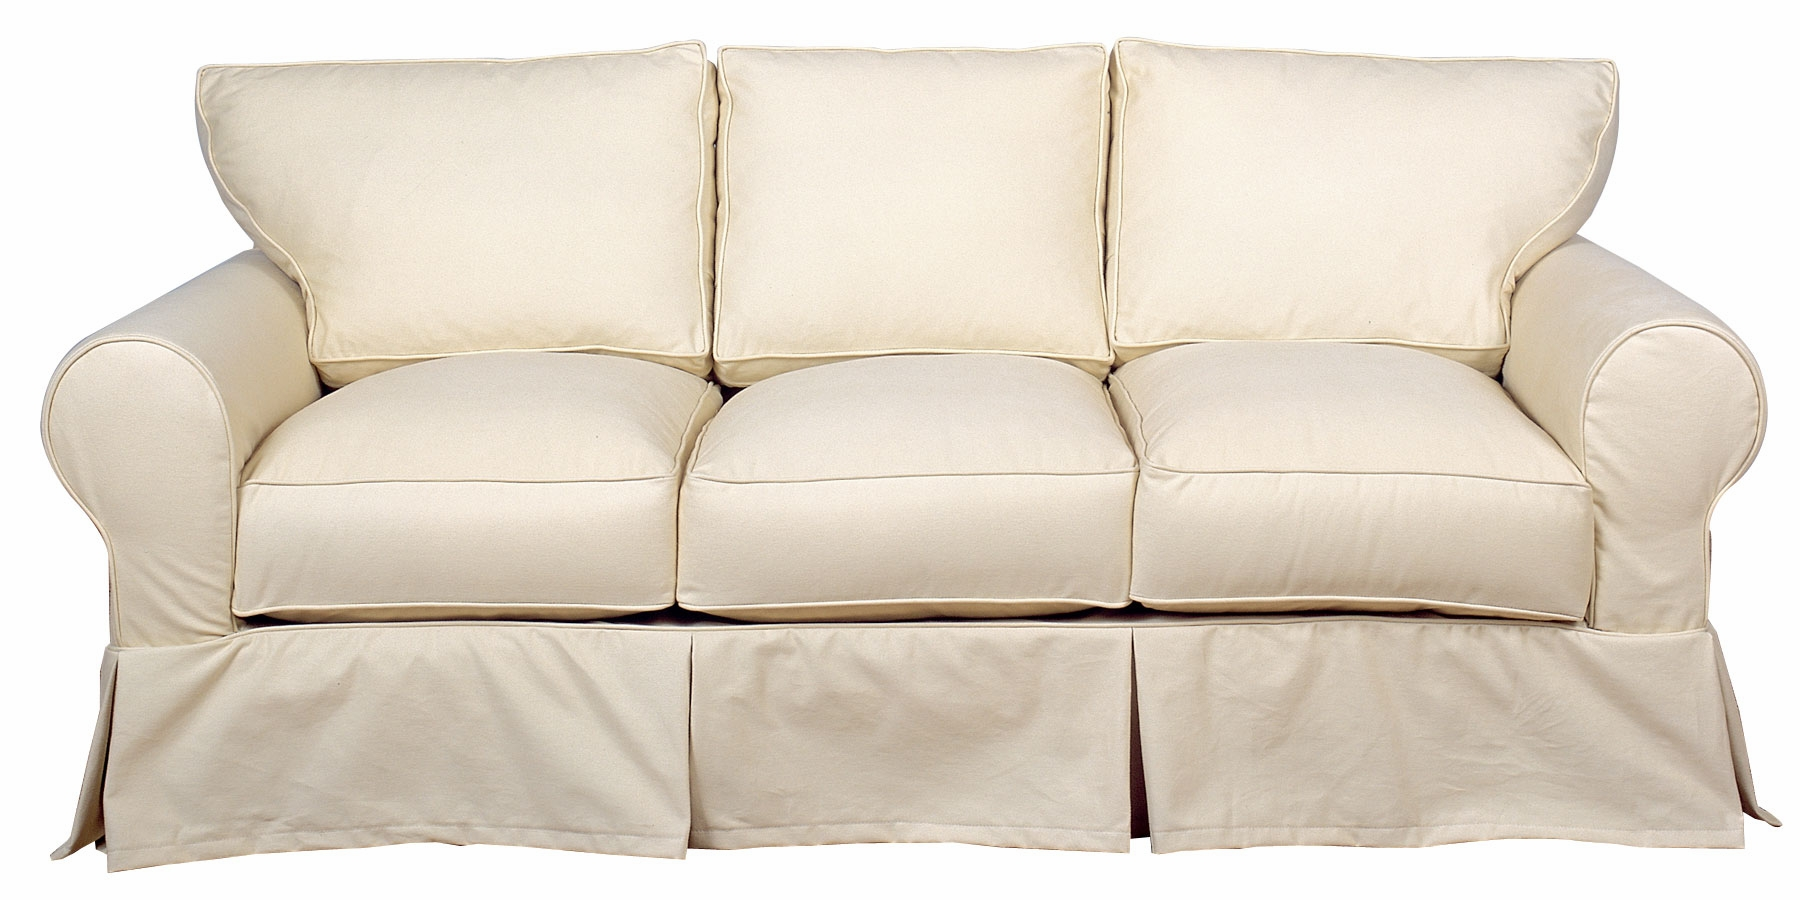 Three cushion sofa slipcover cushion 3 sofa slipcover slipcovers for couch thesofa Loveseat slip cover